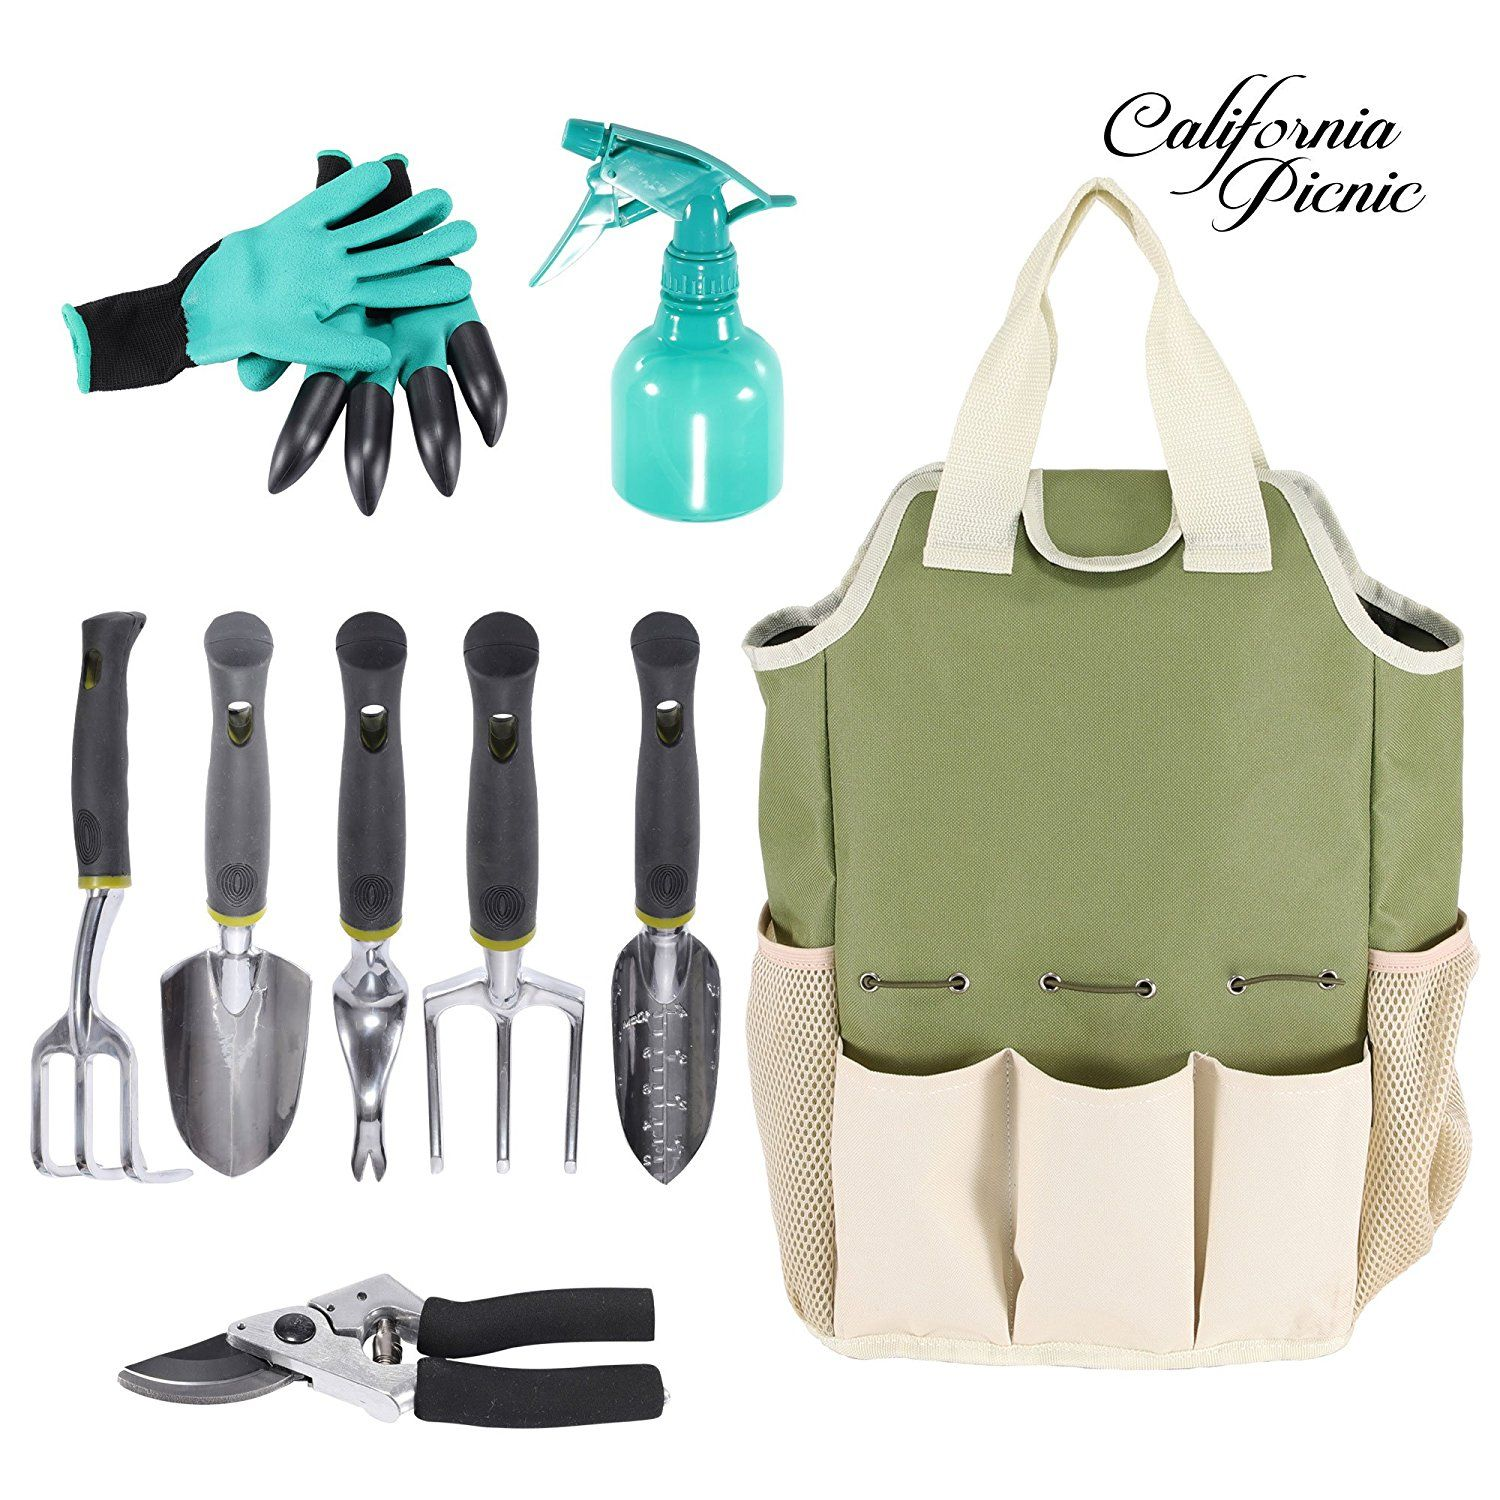 Recomeneded Garden Tools Set is part of Home garden Tools - Bedding Price  $73 95 View More Add To